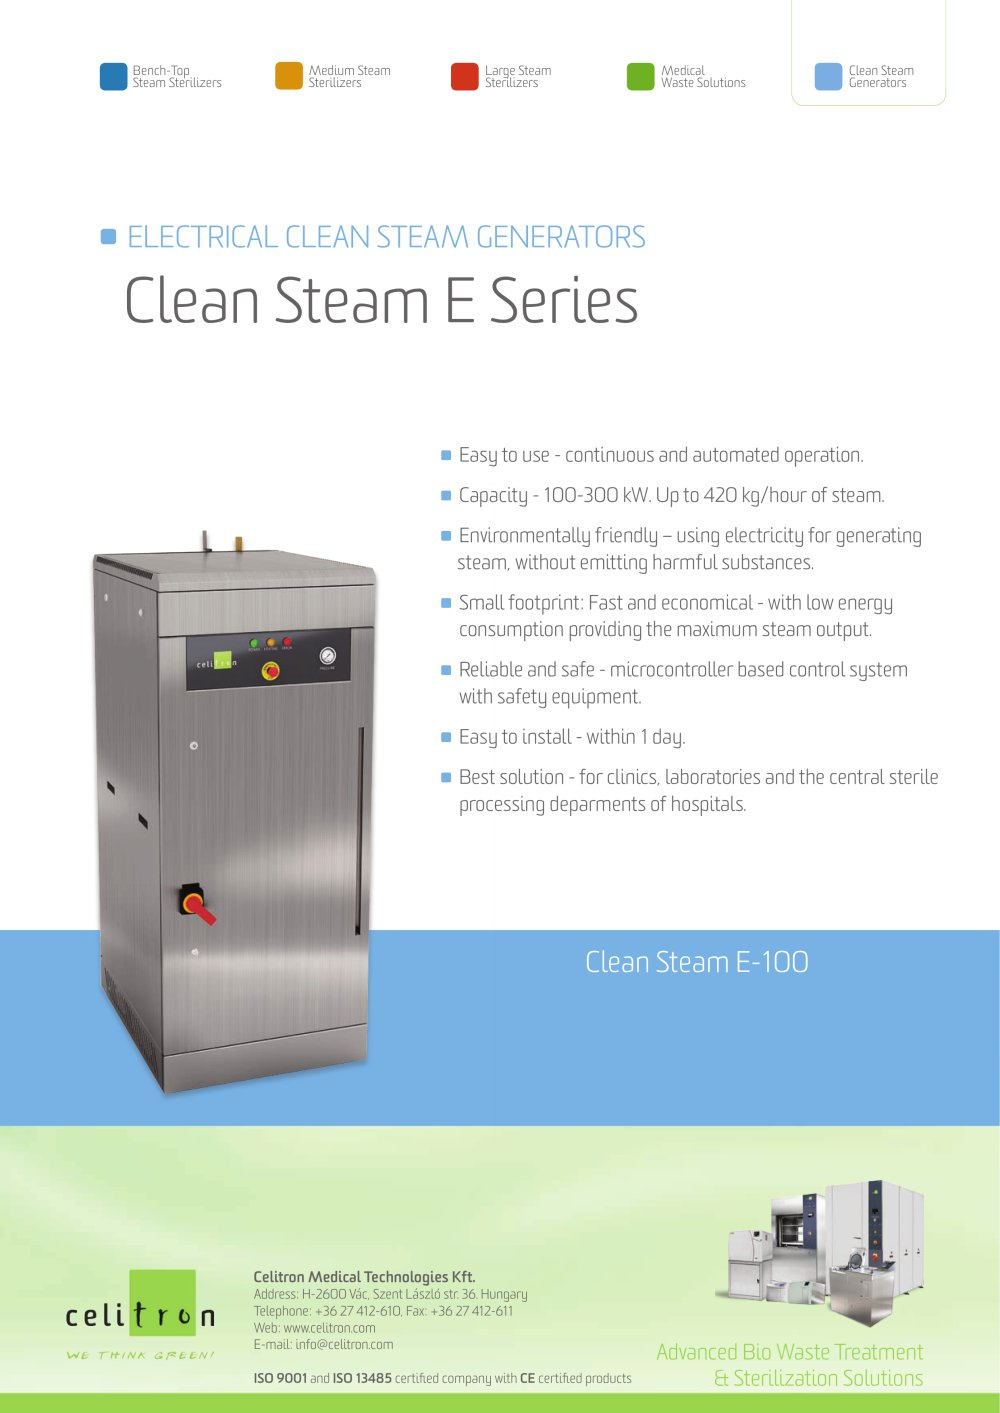 Electrical Clean Steam Generators Celitron Medical Technologies 1 2 Pages